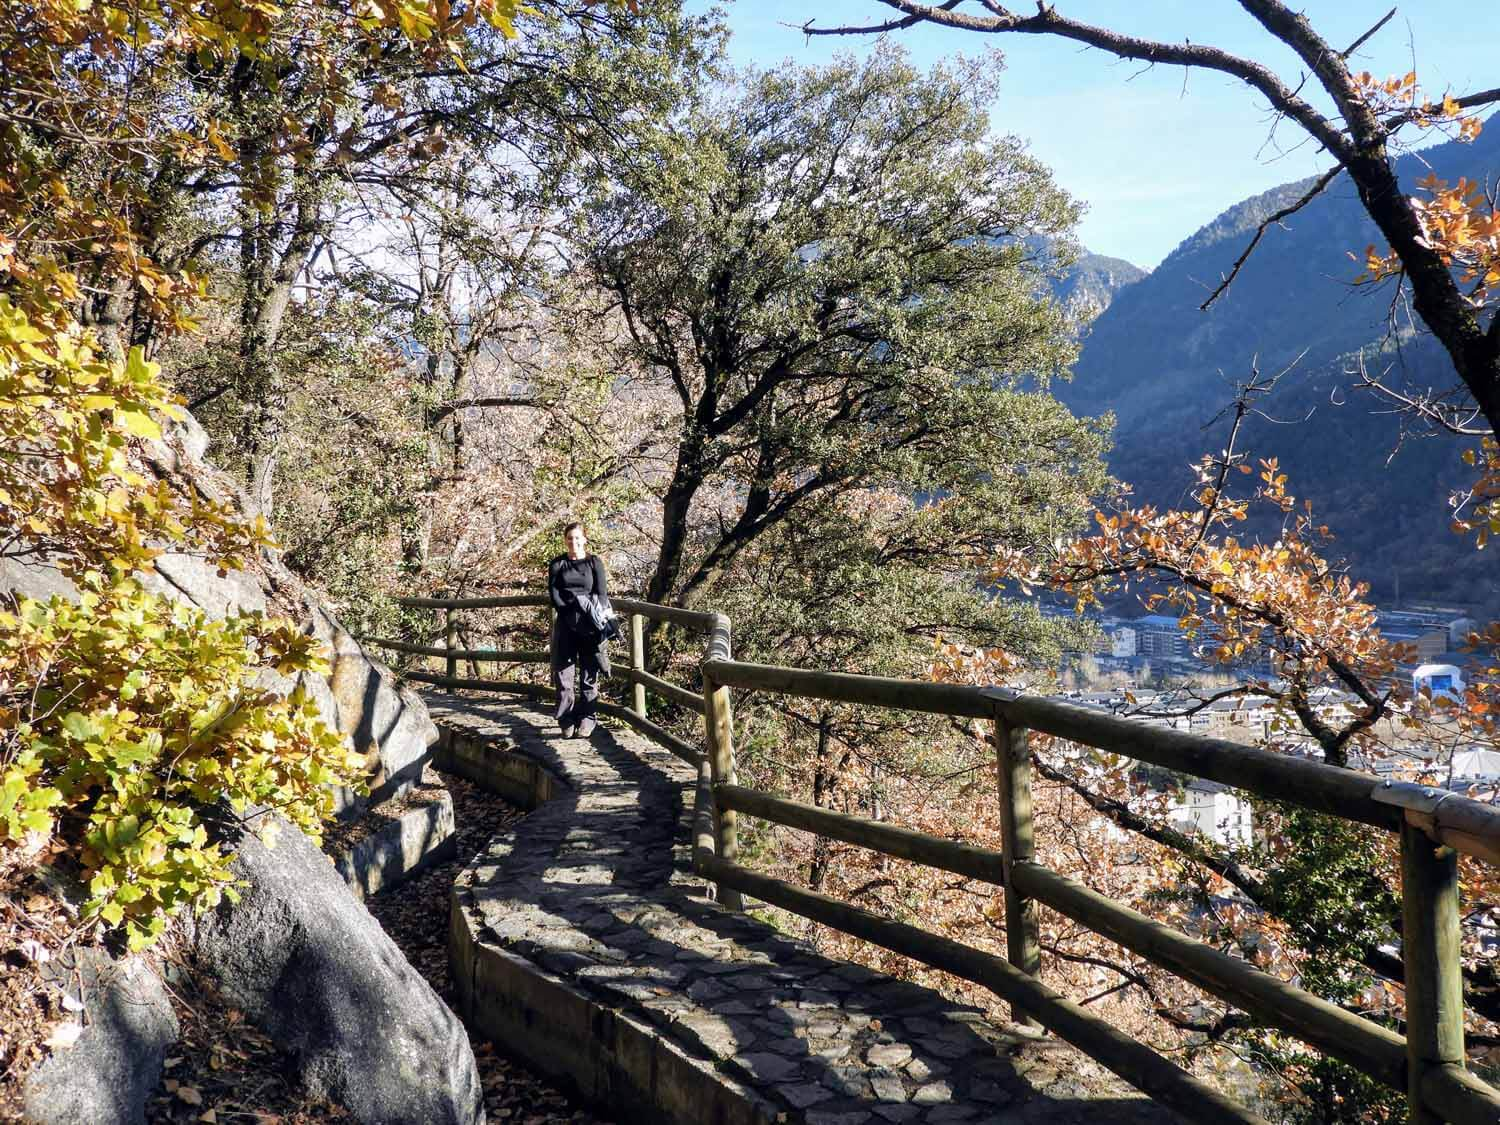 andorra-micro-nation-canal-la-vella-hike-overlook-valley.jpg